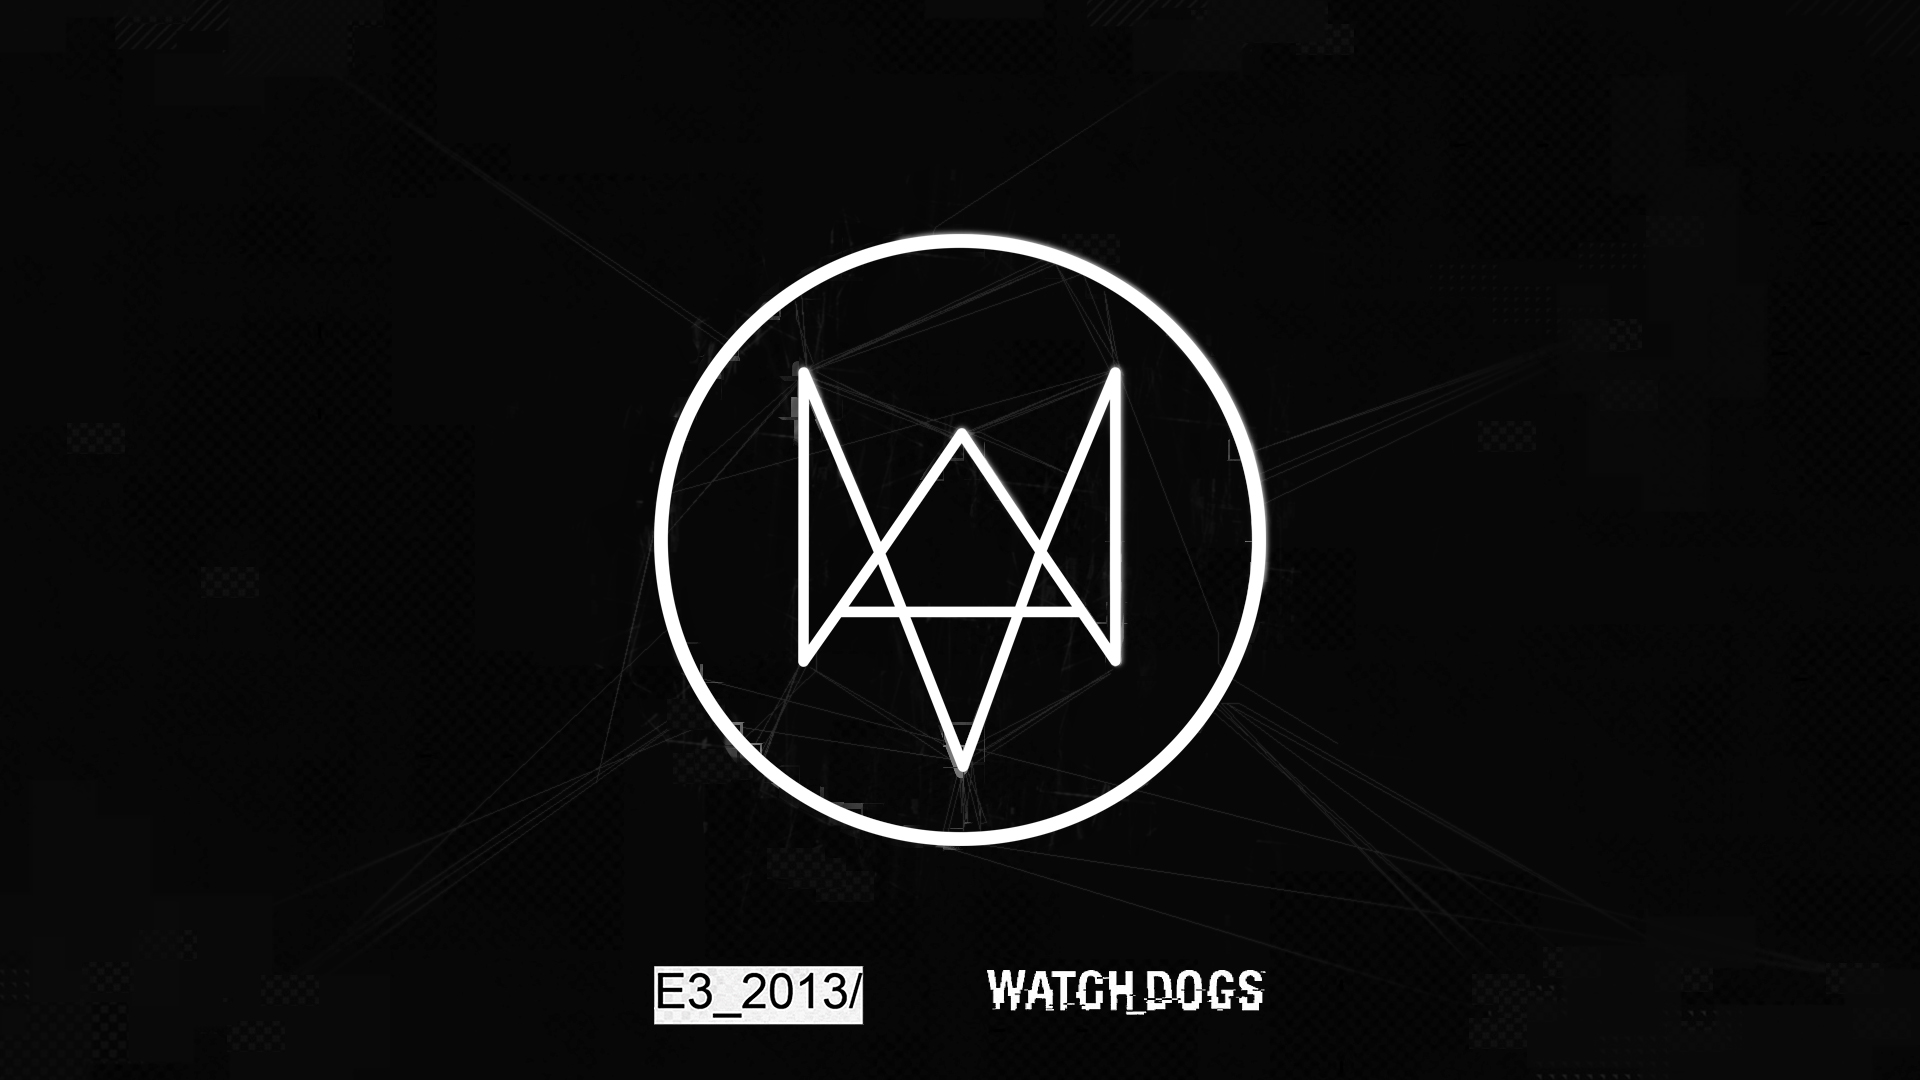 watch dogs fox logo wallpaper -#main